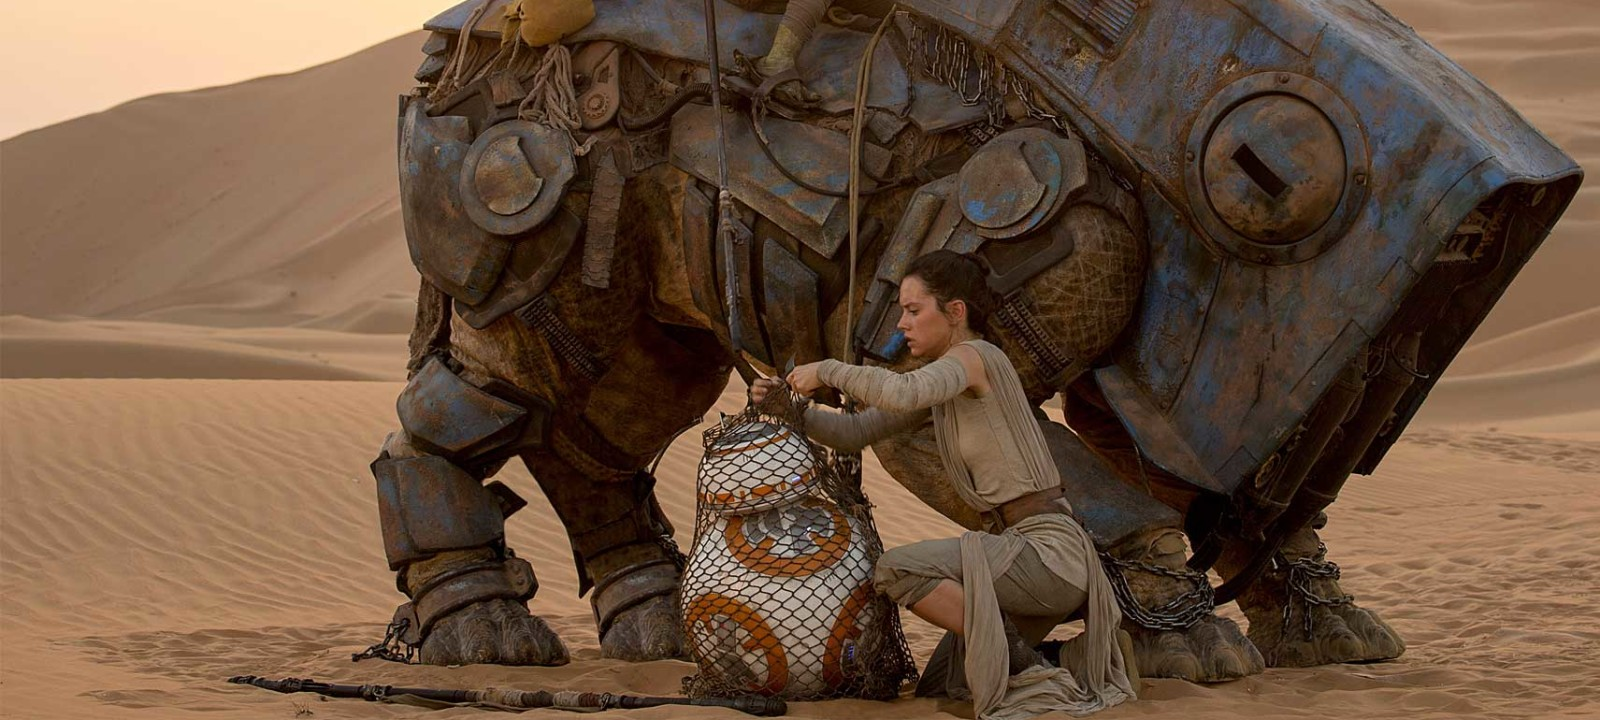 Star Wars: The Force Awakens (Photo: Lucasfilm)